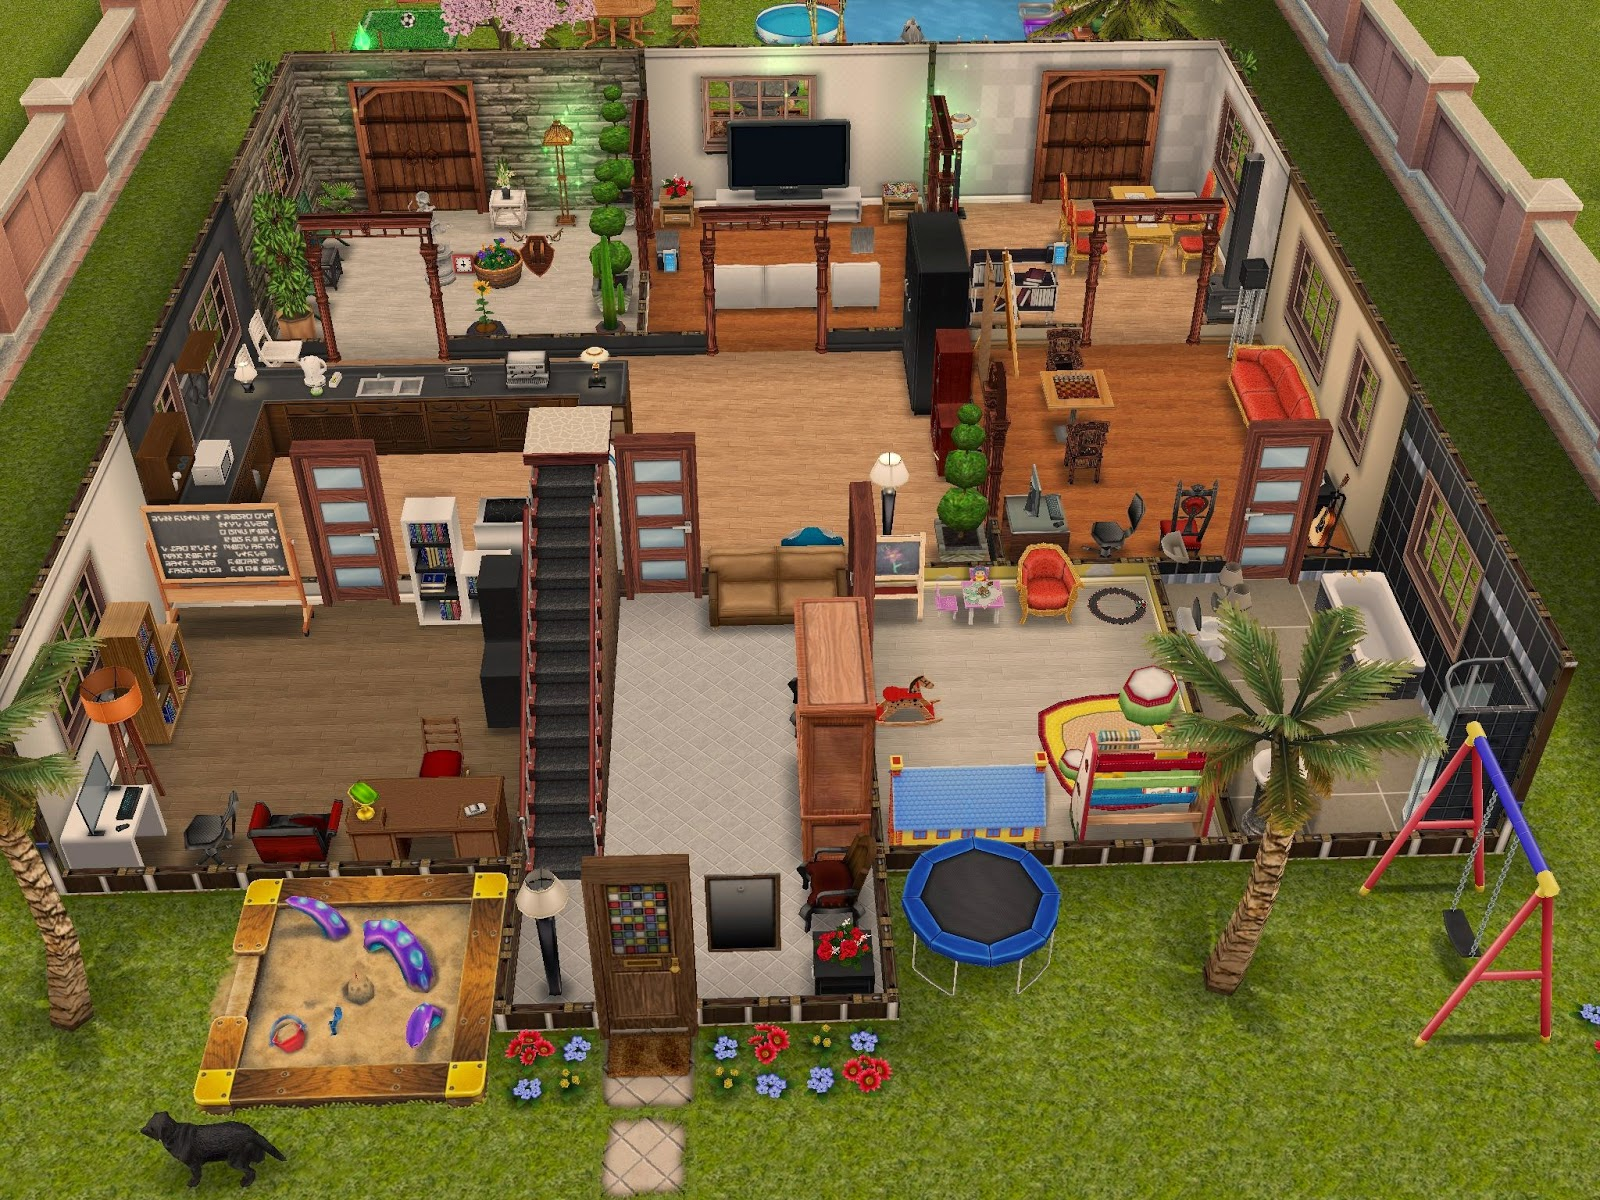 The sims freeplay when you 39 ve got enough money all the world 39 s a game - Sims freeplay designer home ...